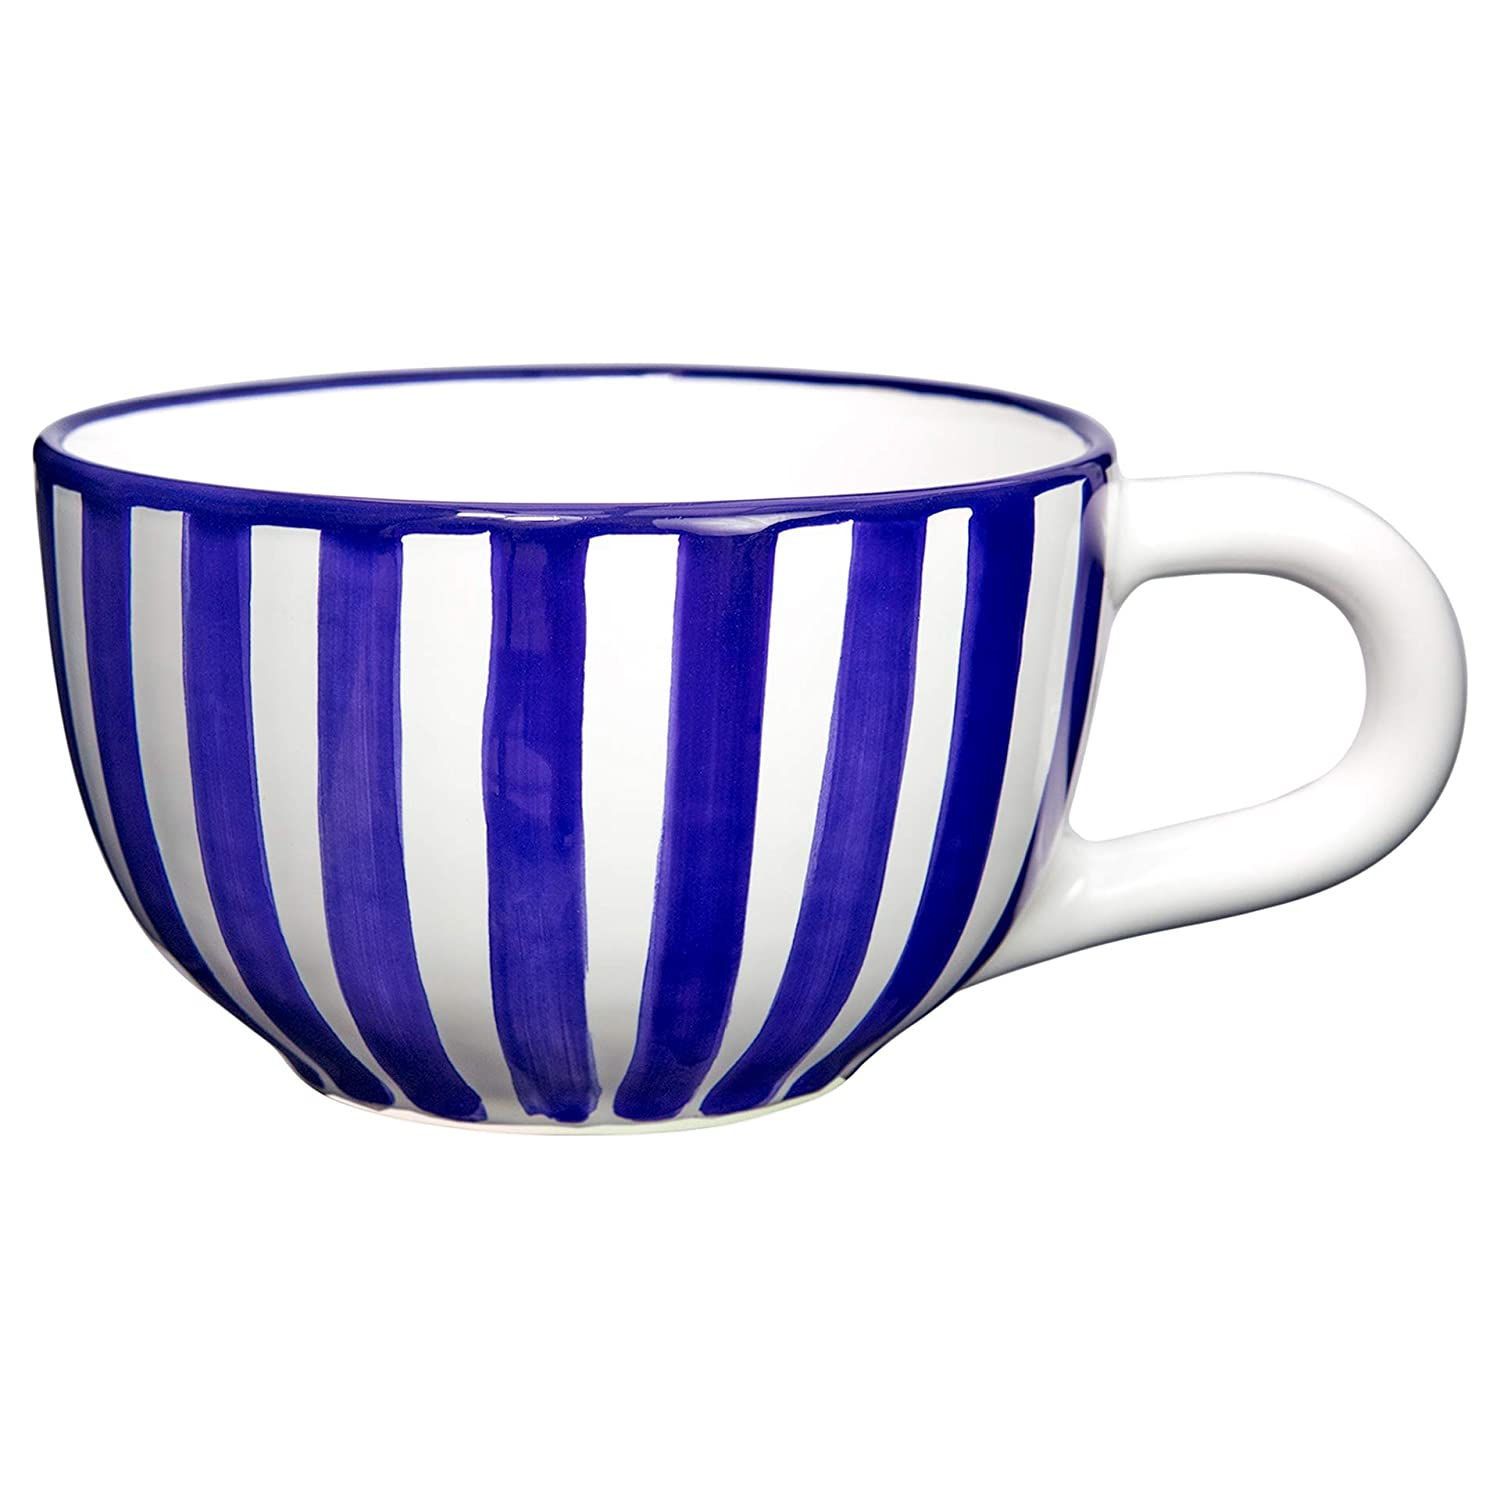 City to Cottage Navy Blue Striped | Designer Handmade Hand Painted | Unique Ceramic Extra Large 17.5oz/500ml | Cappuccino Coffee Tea Soup Mugs Cups with Handle | Gift citytocottage.co.uk